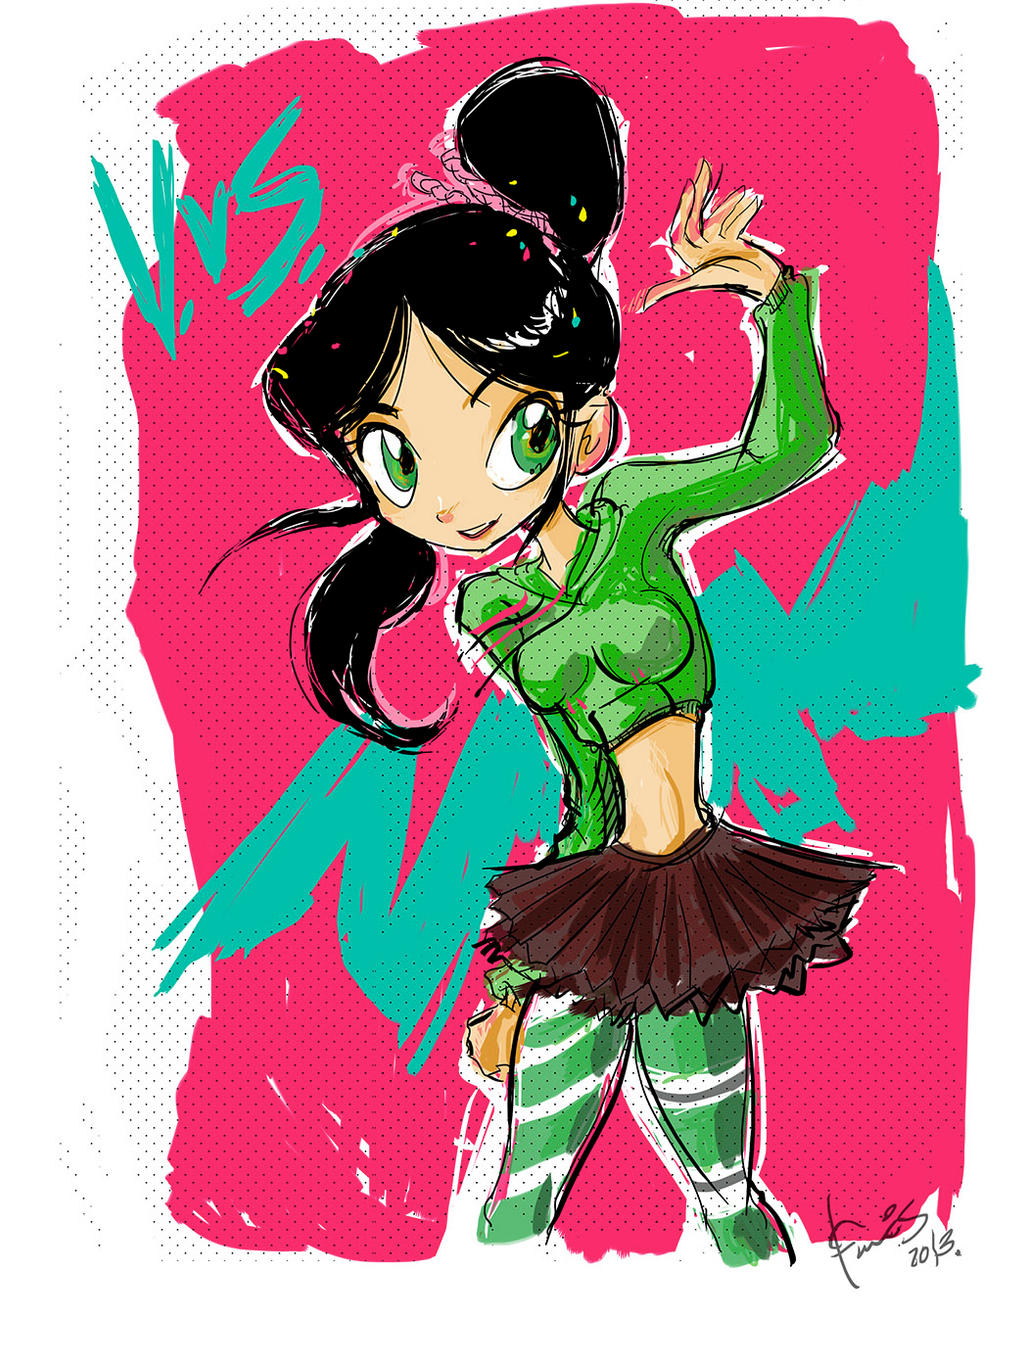 Vanellope Von Schweetz teen version by favius